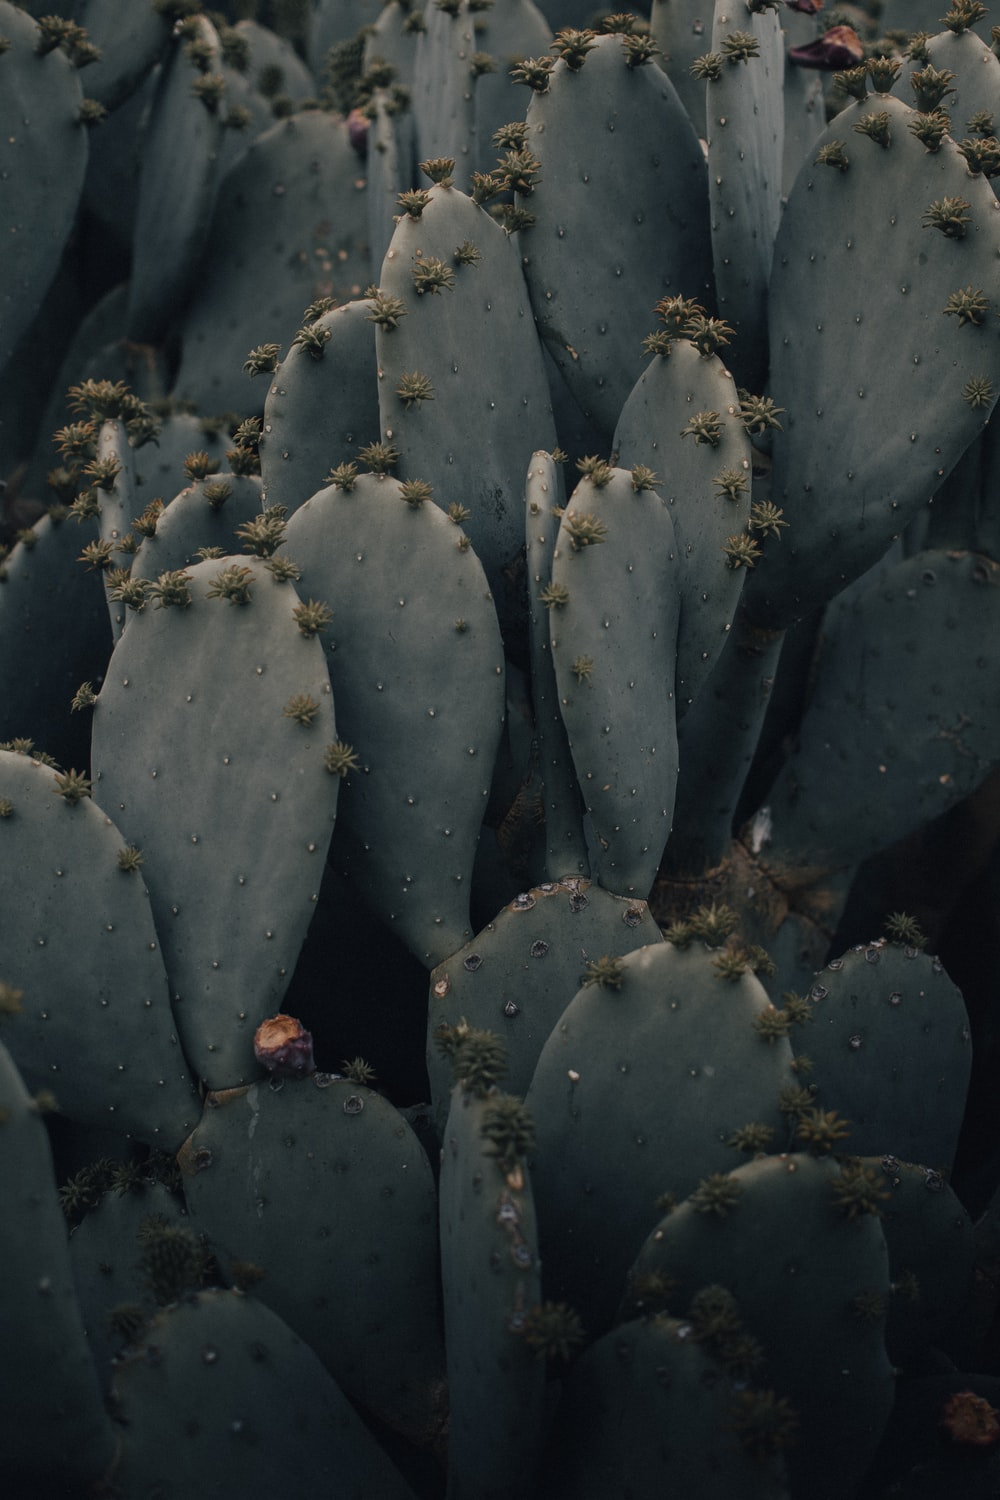 green cactus plant in close up photography